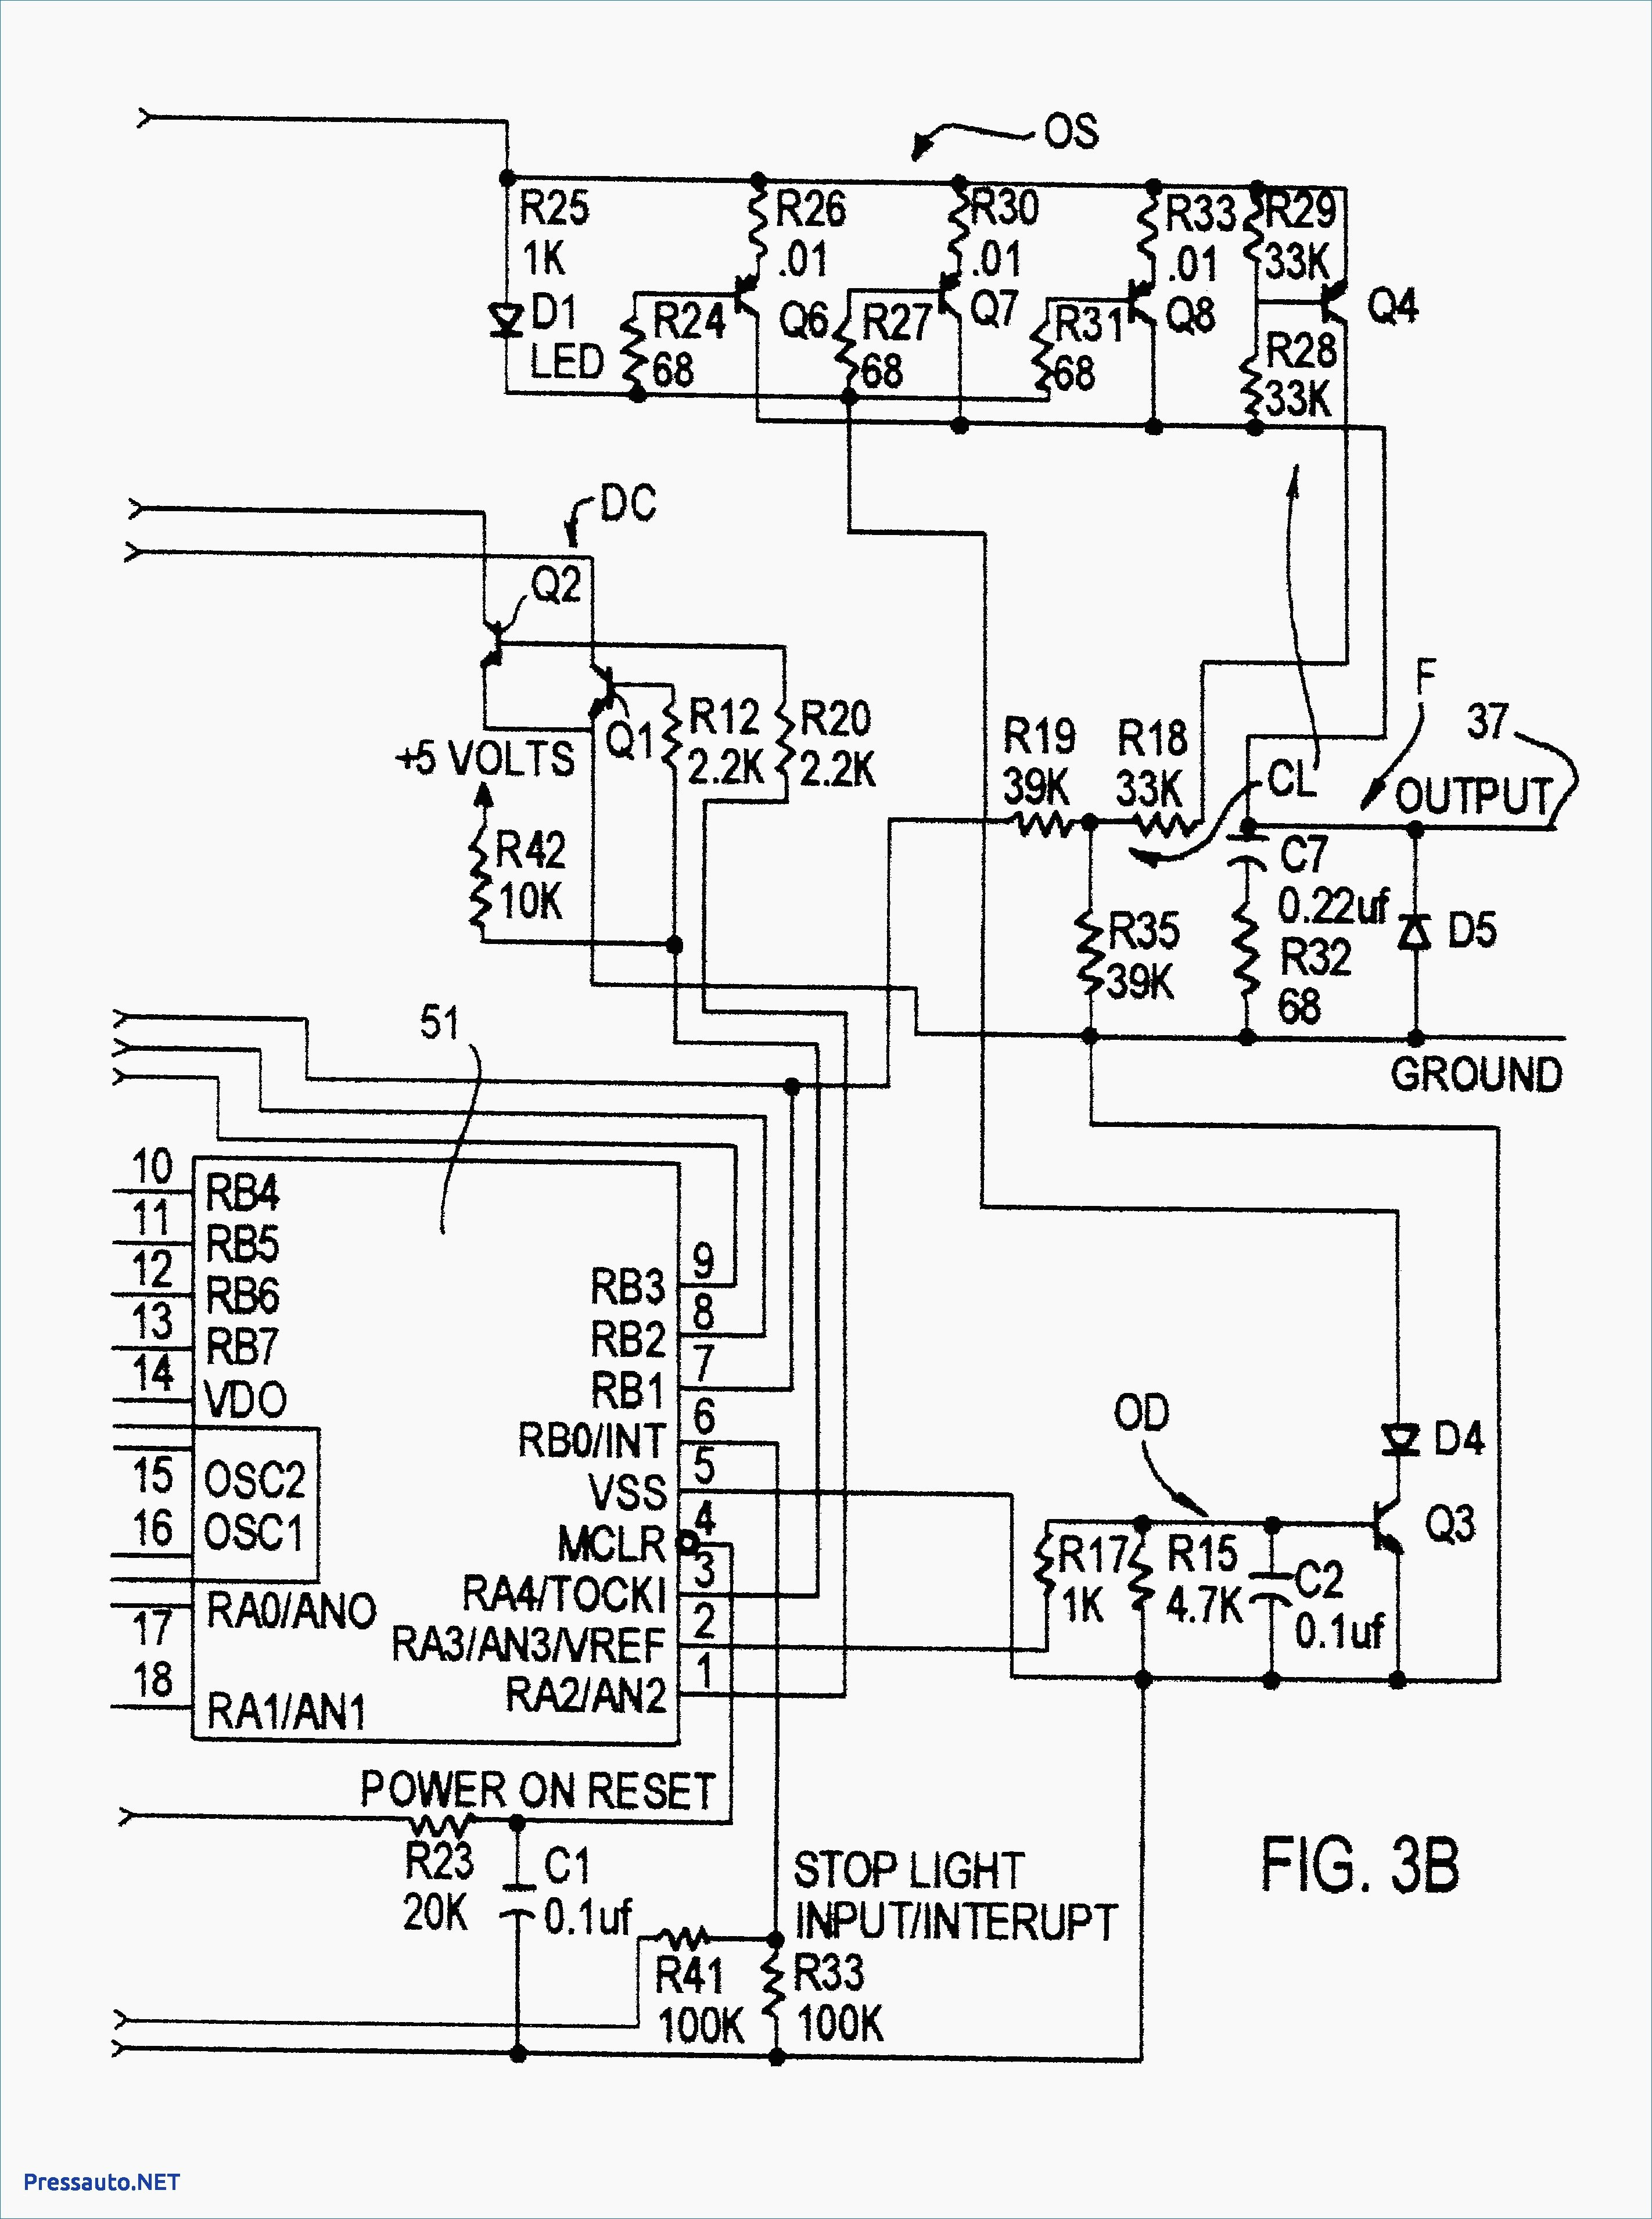 get electrical wiring diagram creator download